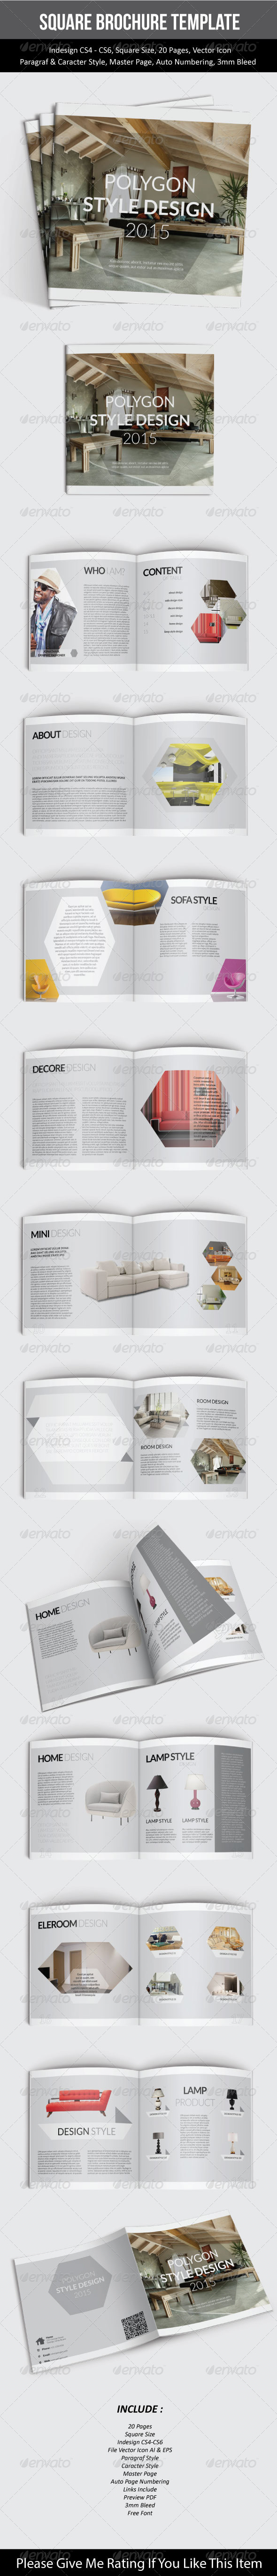 GraphicRiver Square Brochure Template 7547698